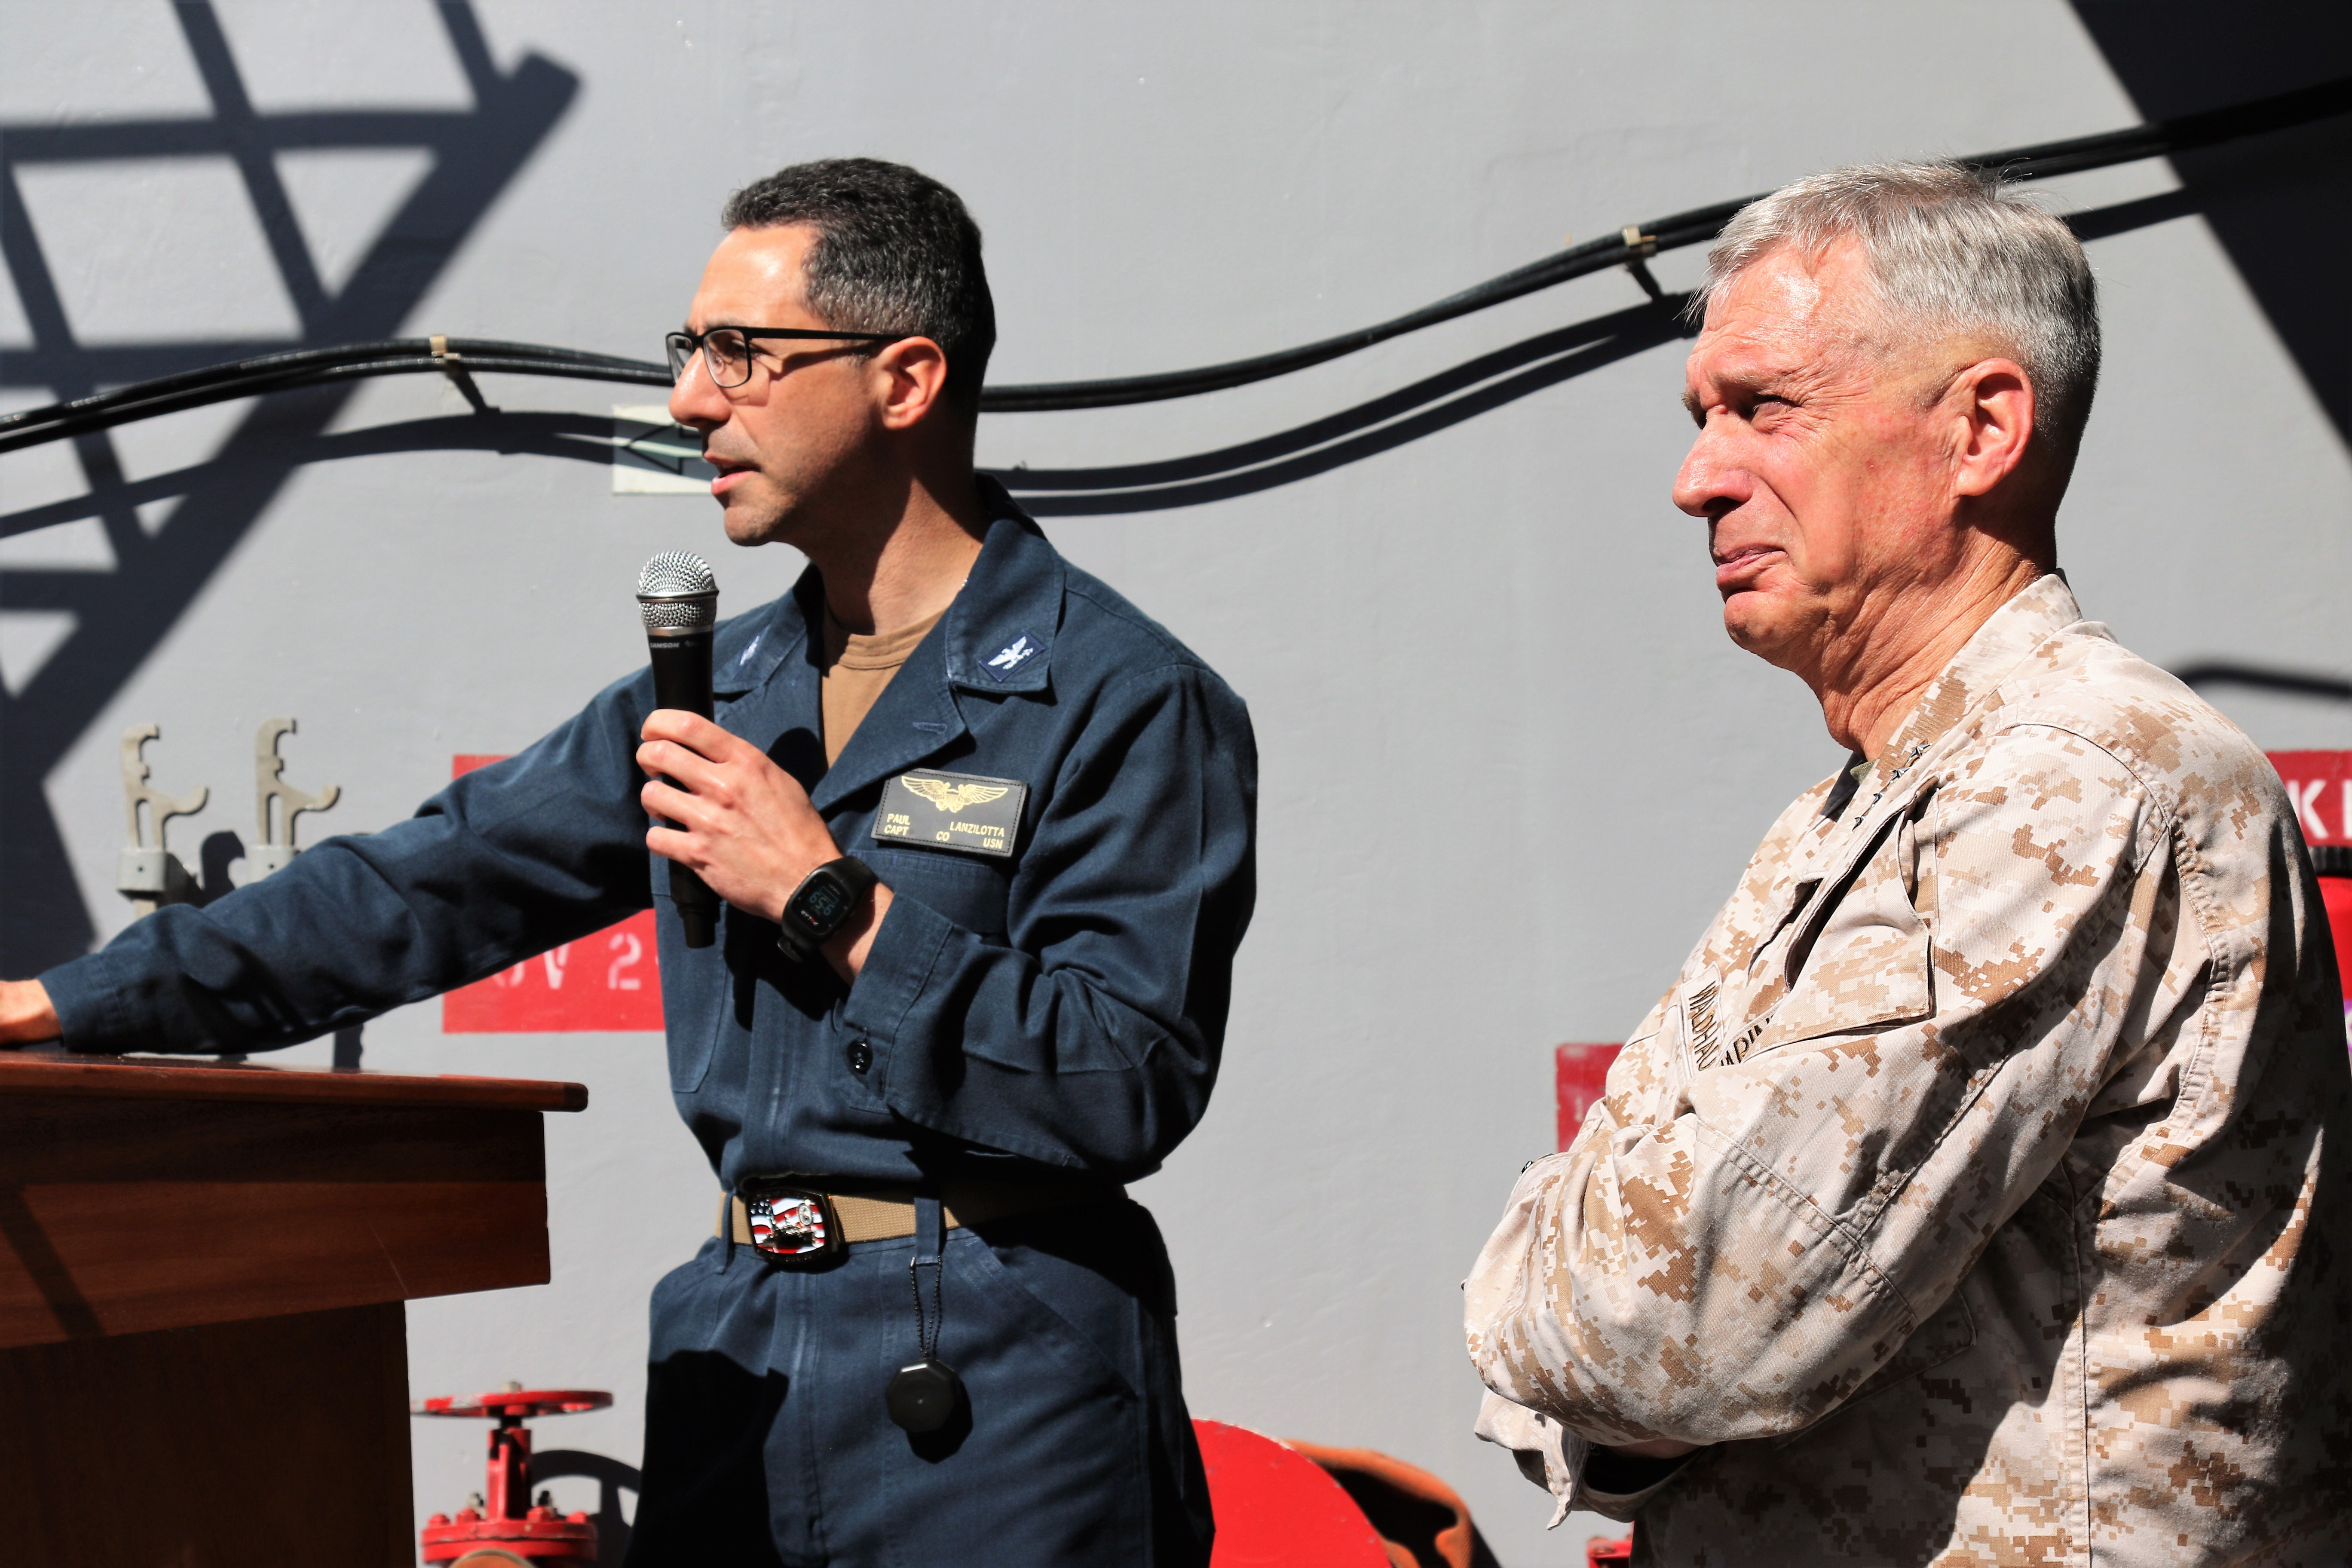 Capt. Paul Lanzilotta, commanding officer of the San Antonio-class amphibious transport dock ship USS Arlington (LPD 24)  introduces Marine Corps Gen. Thomas D. Waldhauser, commander, U.S. Africa Command during a visit to the ship May 9, 2019. Waldhauser thanked the crew for their efforts to support AFRICOM operations and engagements in the command's area of responsibility.